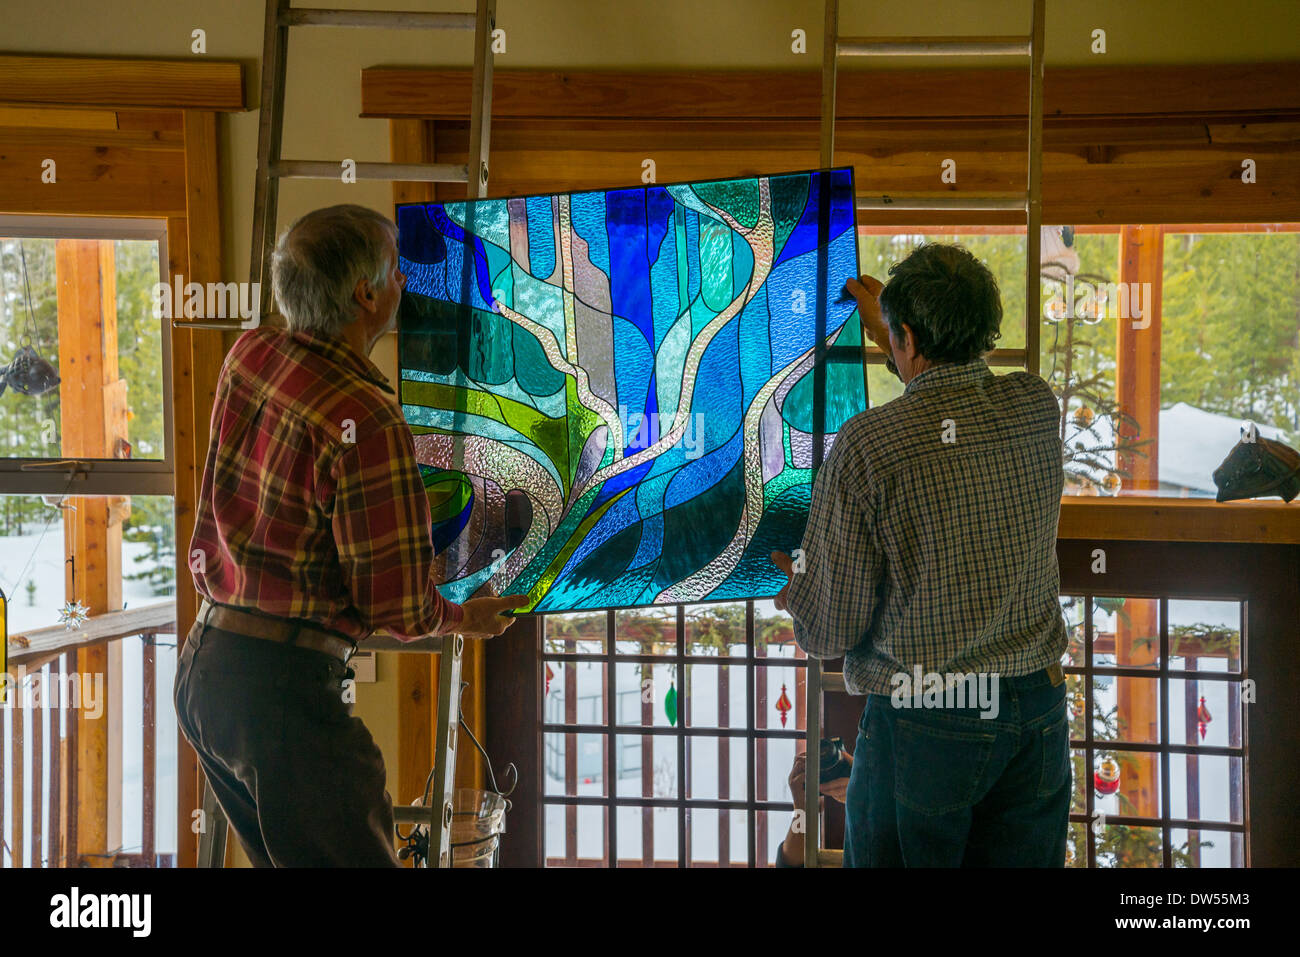 Beautiful stained glass window installation. Designed and crafted by artist Katarzyna Baldys. - Stock Image